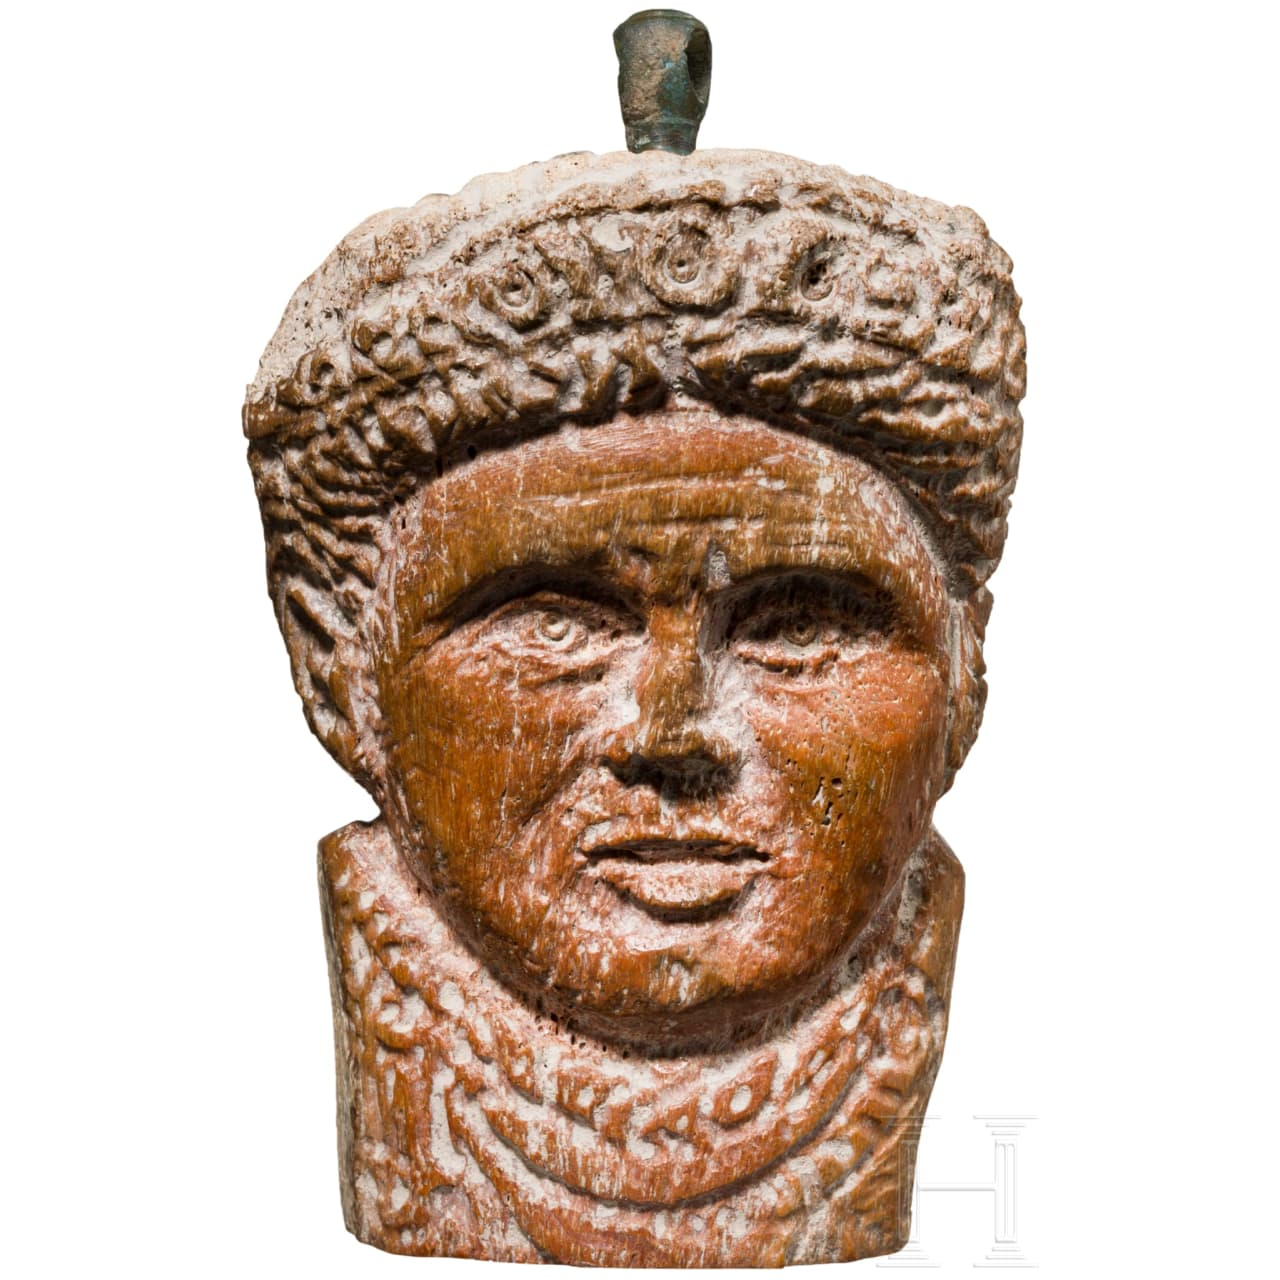 A rare Roman imperial portrait carved from bone, 4th century